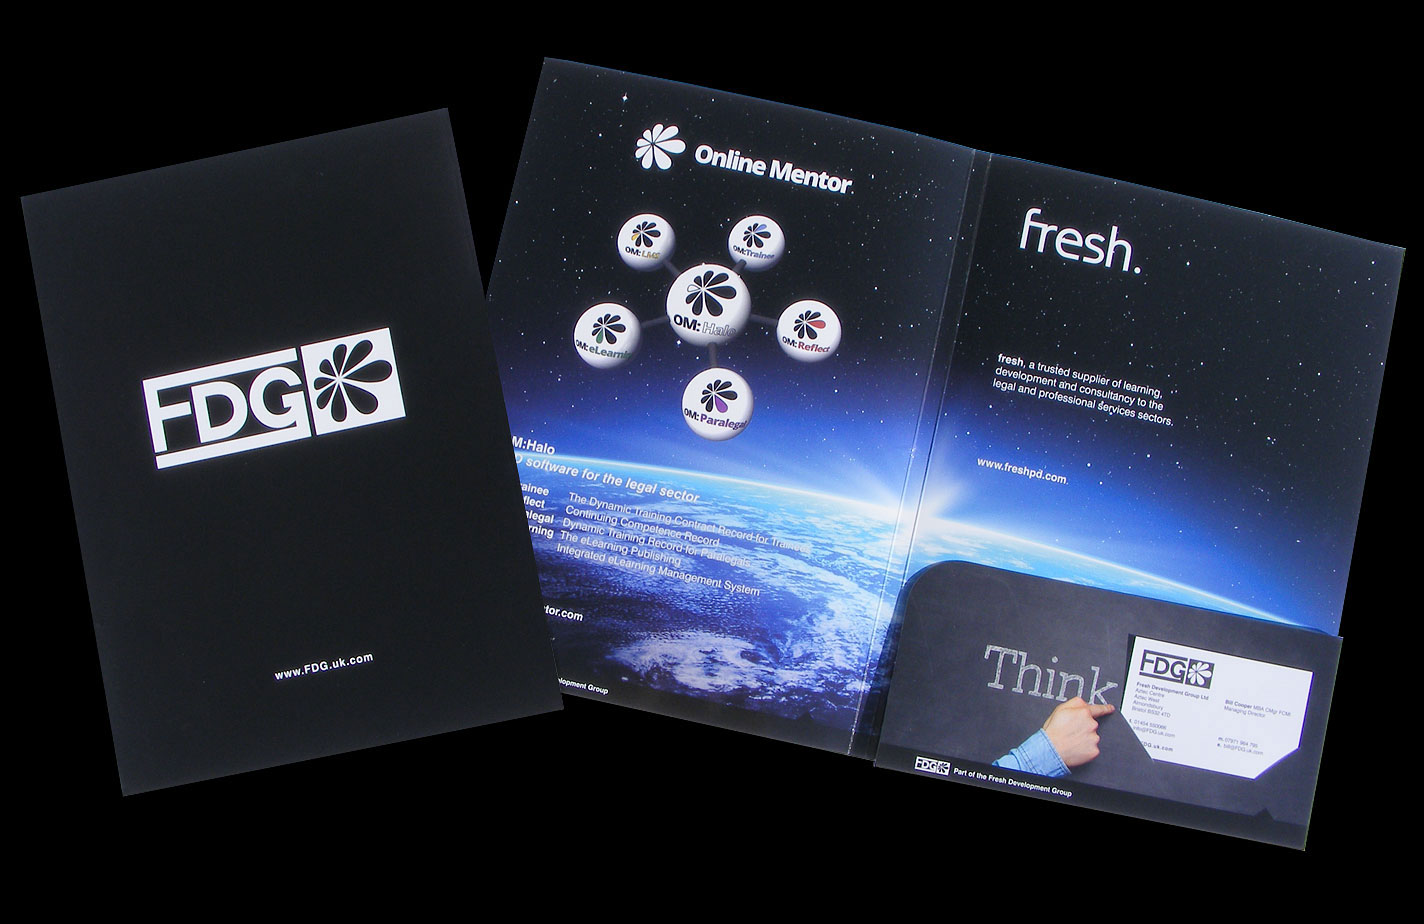 Print - Fresh Development Group - A4+, 6mm Capacity Folder, 300gsm Gloss Laminate, Card Slits - Artwork, Cutter, Illustration & Production.